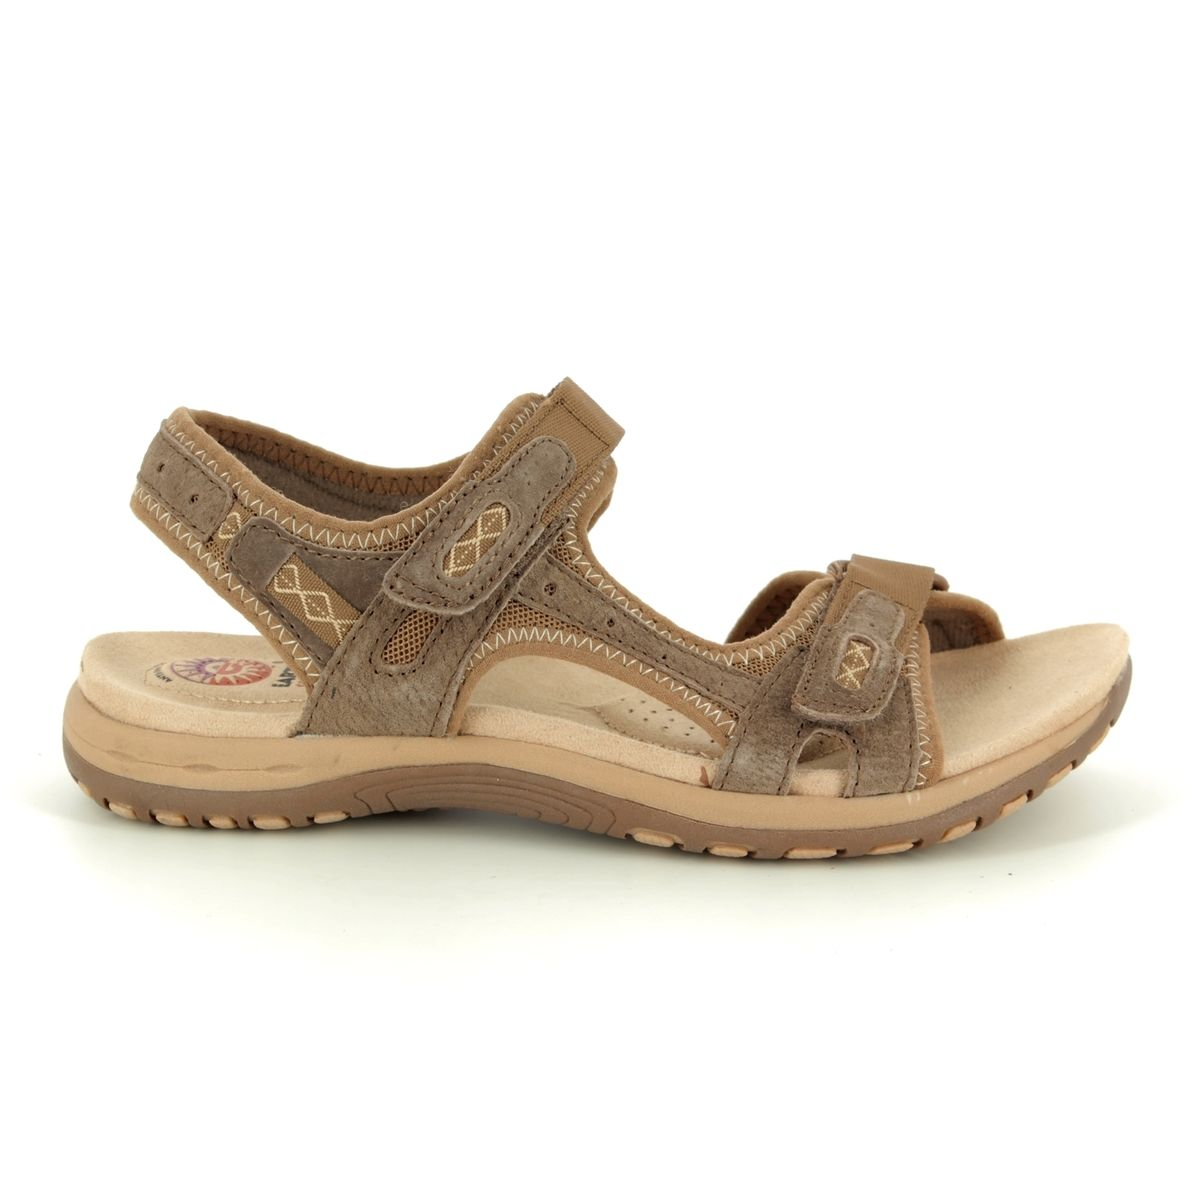 58872605214 Earth Spirit Walking Sandals - Taupe - 30232 20 FRISCO